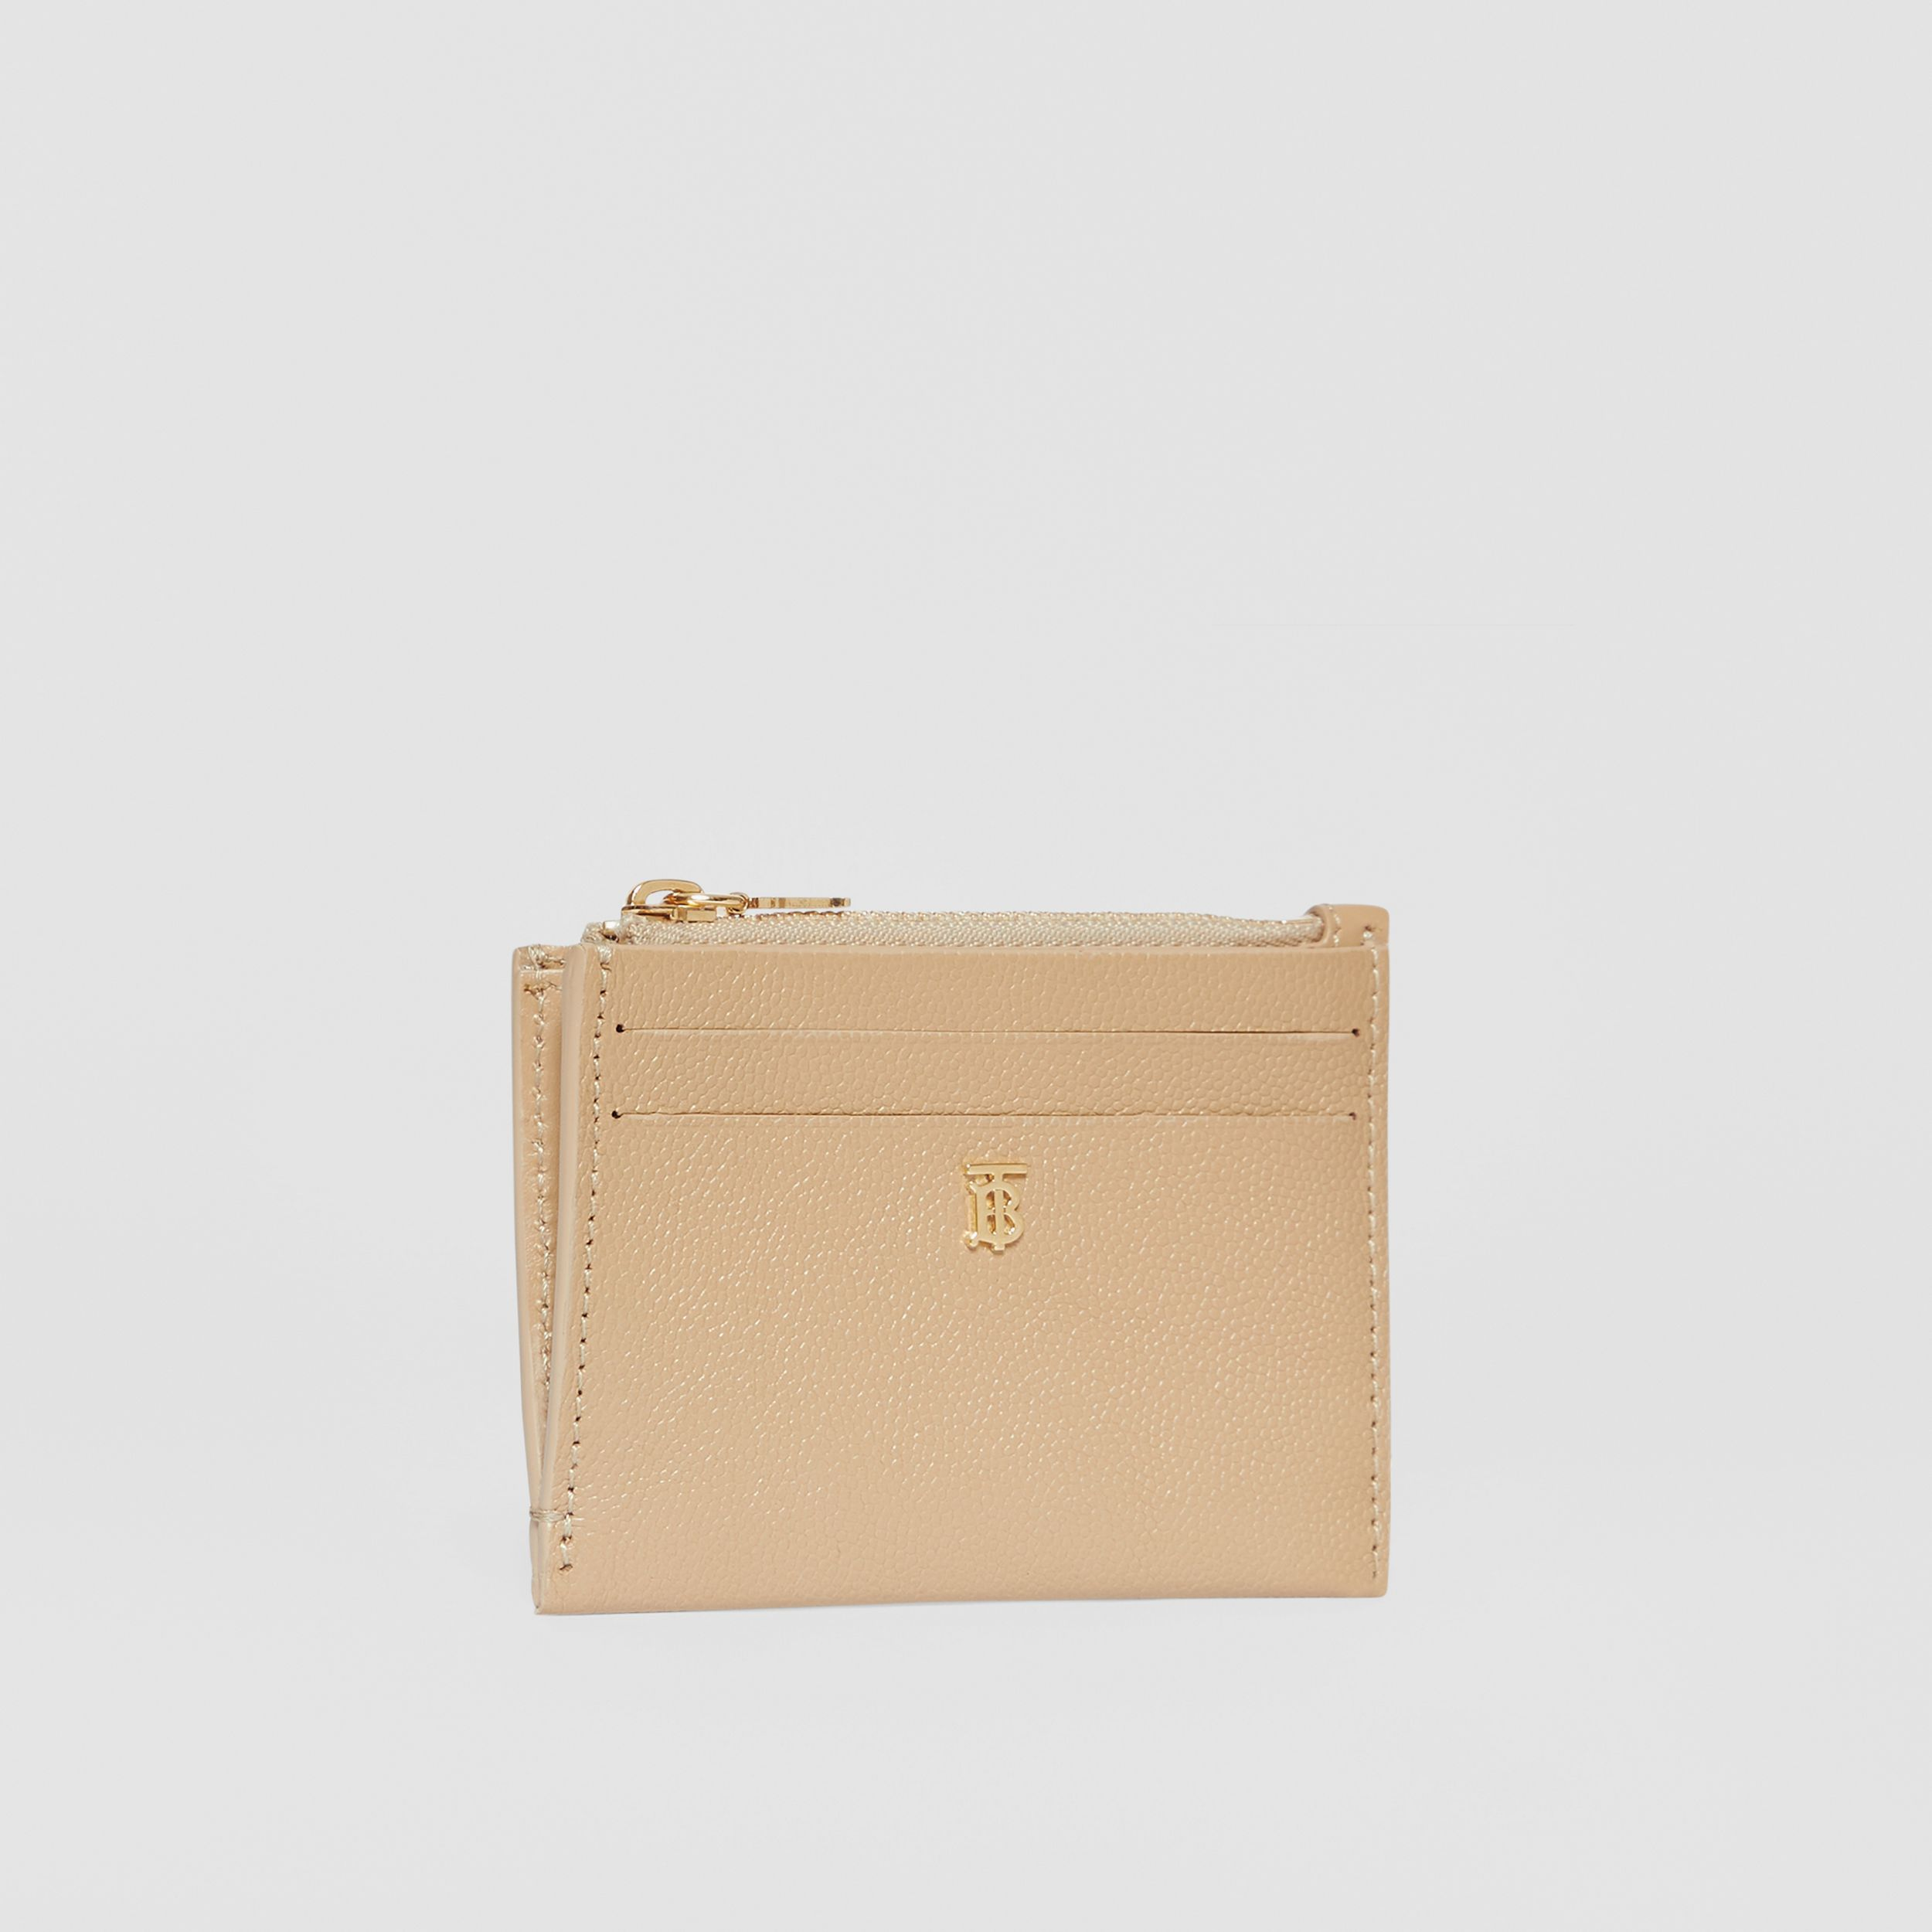 Monogram Motif Grainy Leather Zip Card Case in Archive Beige - Women | Burberry - 4